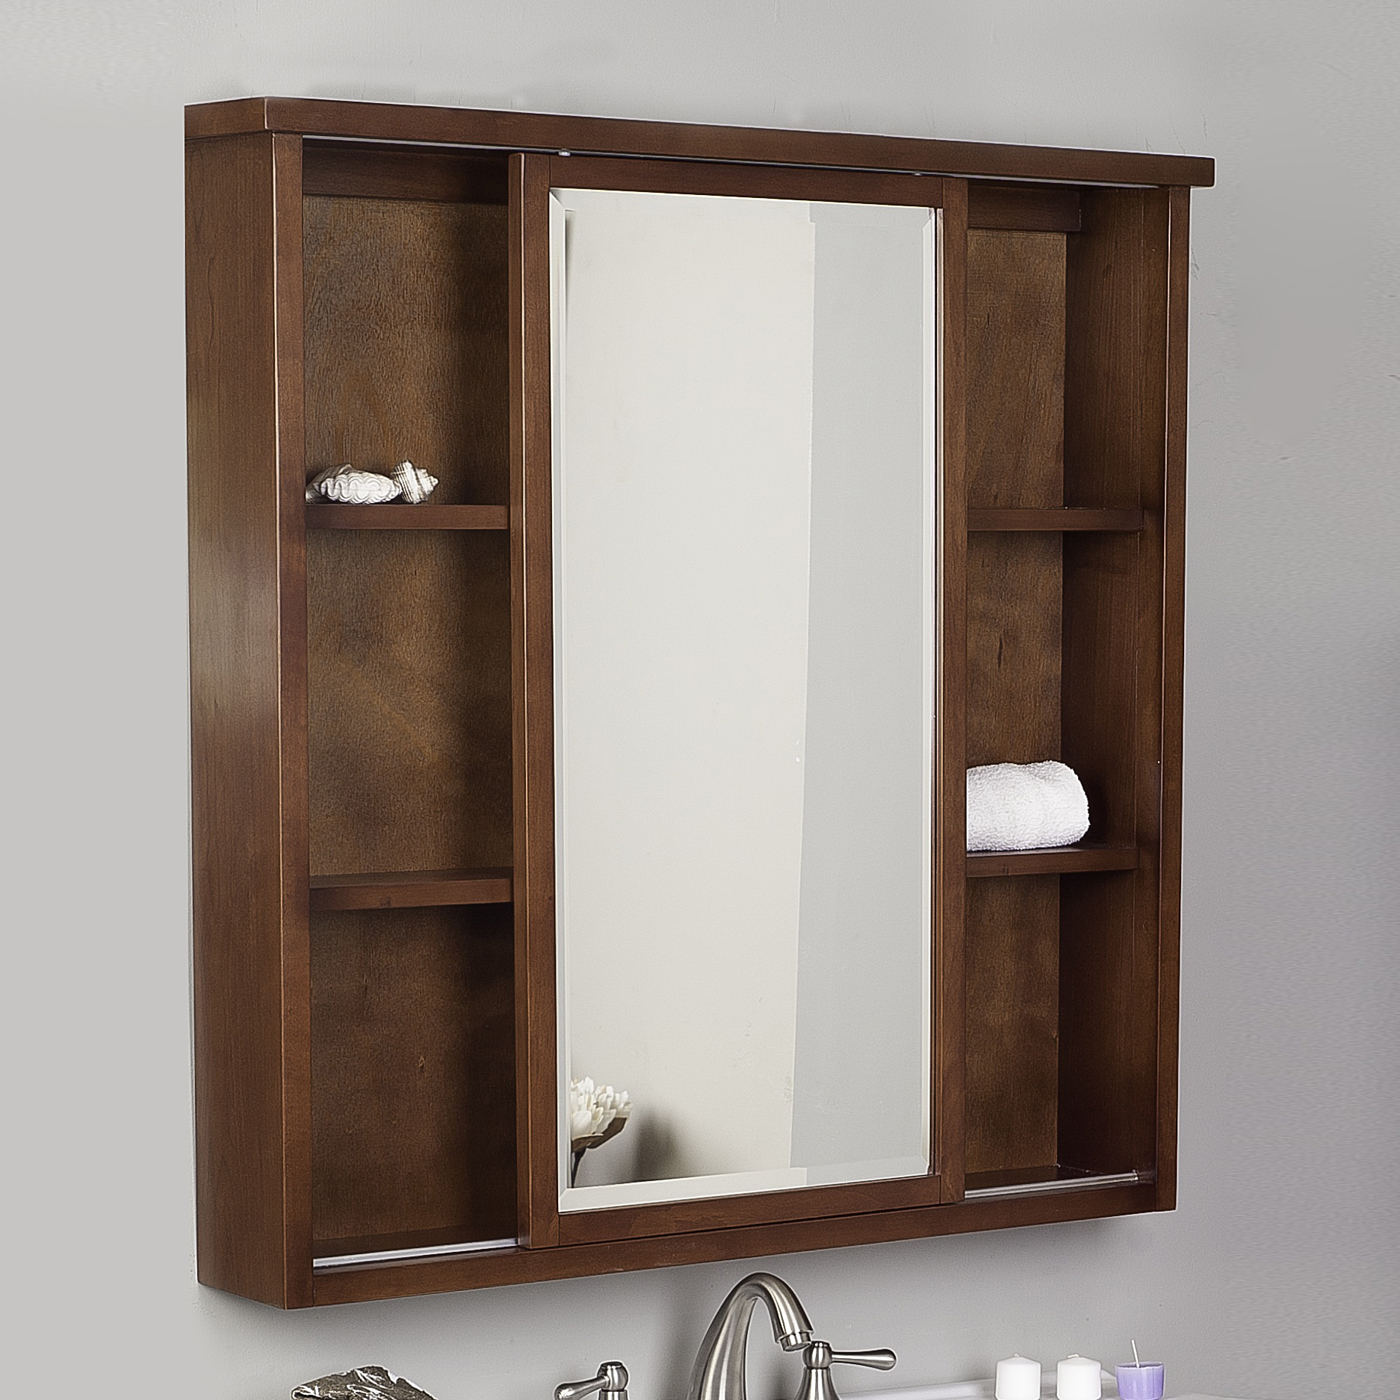 Brown Lowes Medicine Cabinets with mirror plus sink and faucet below